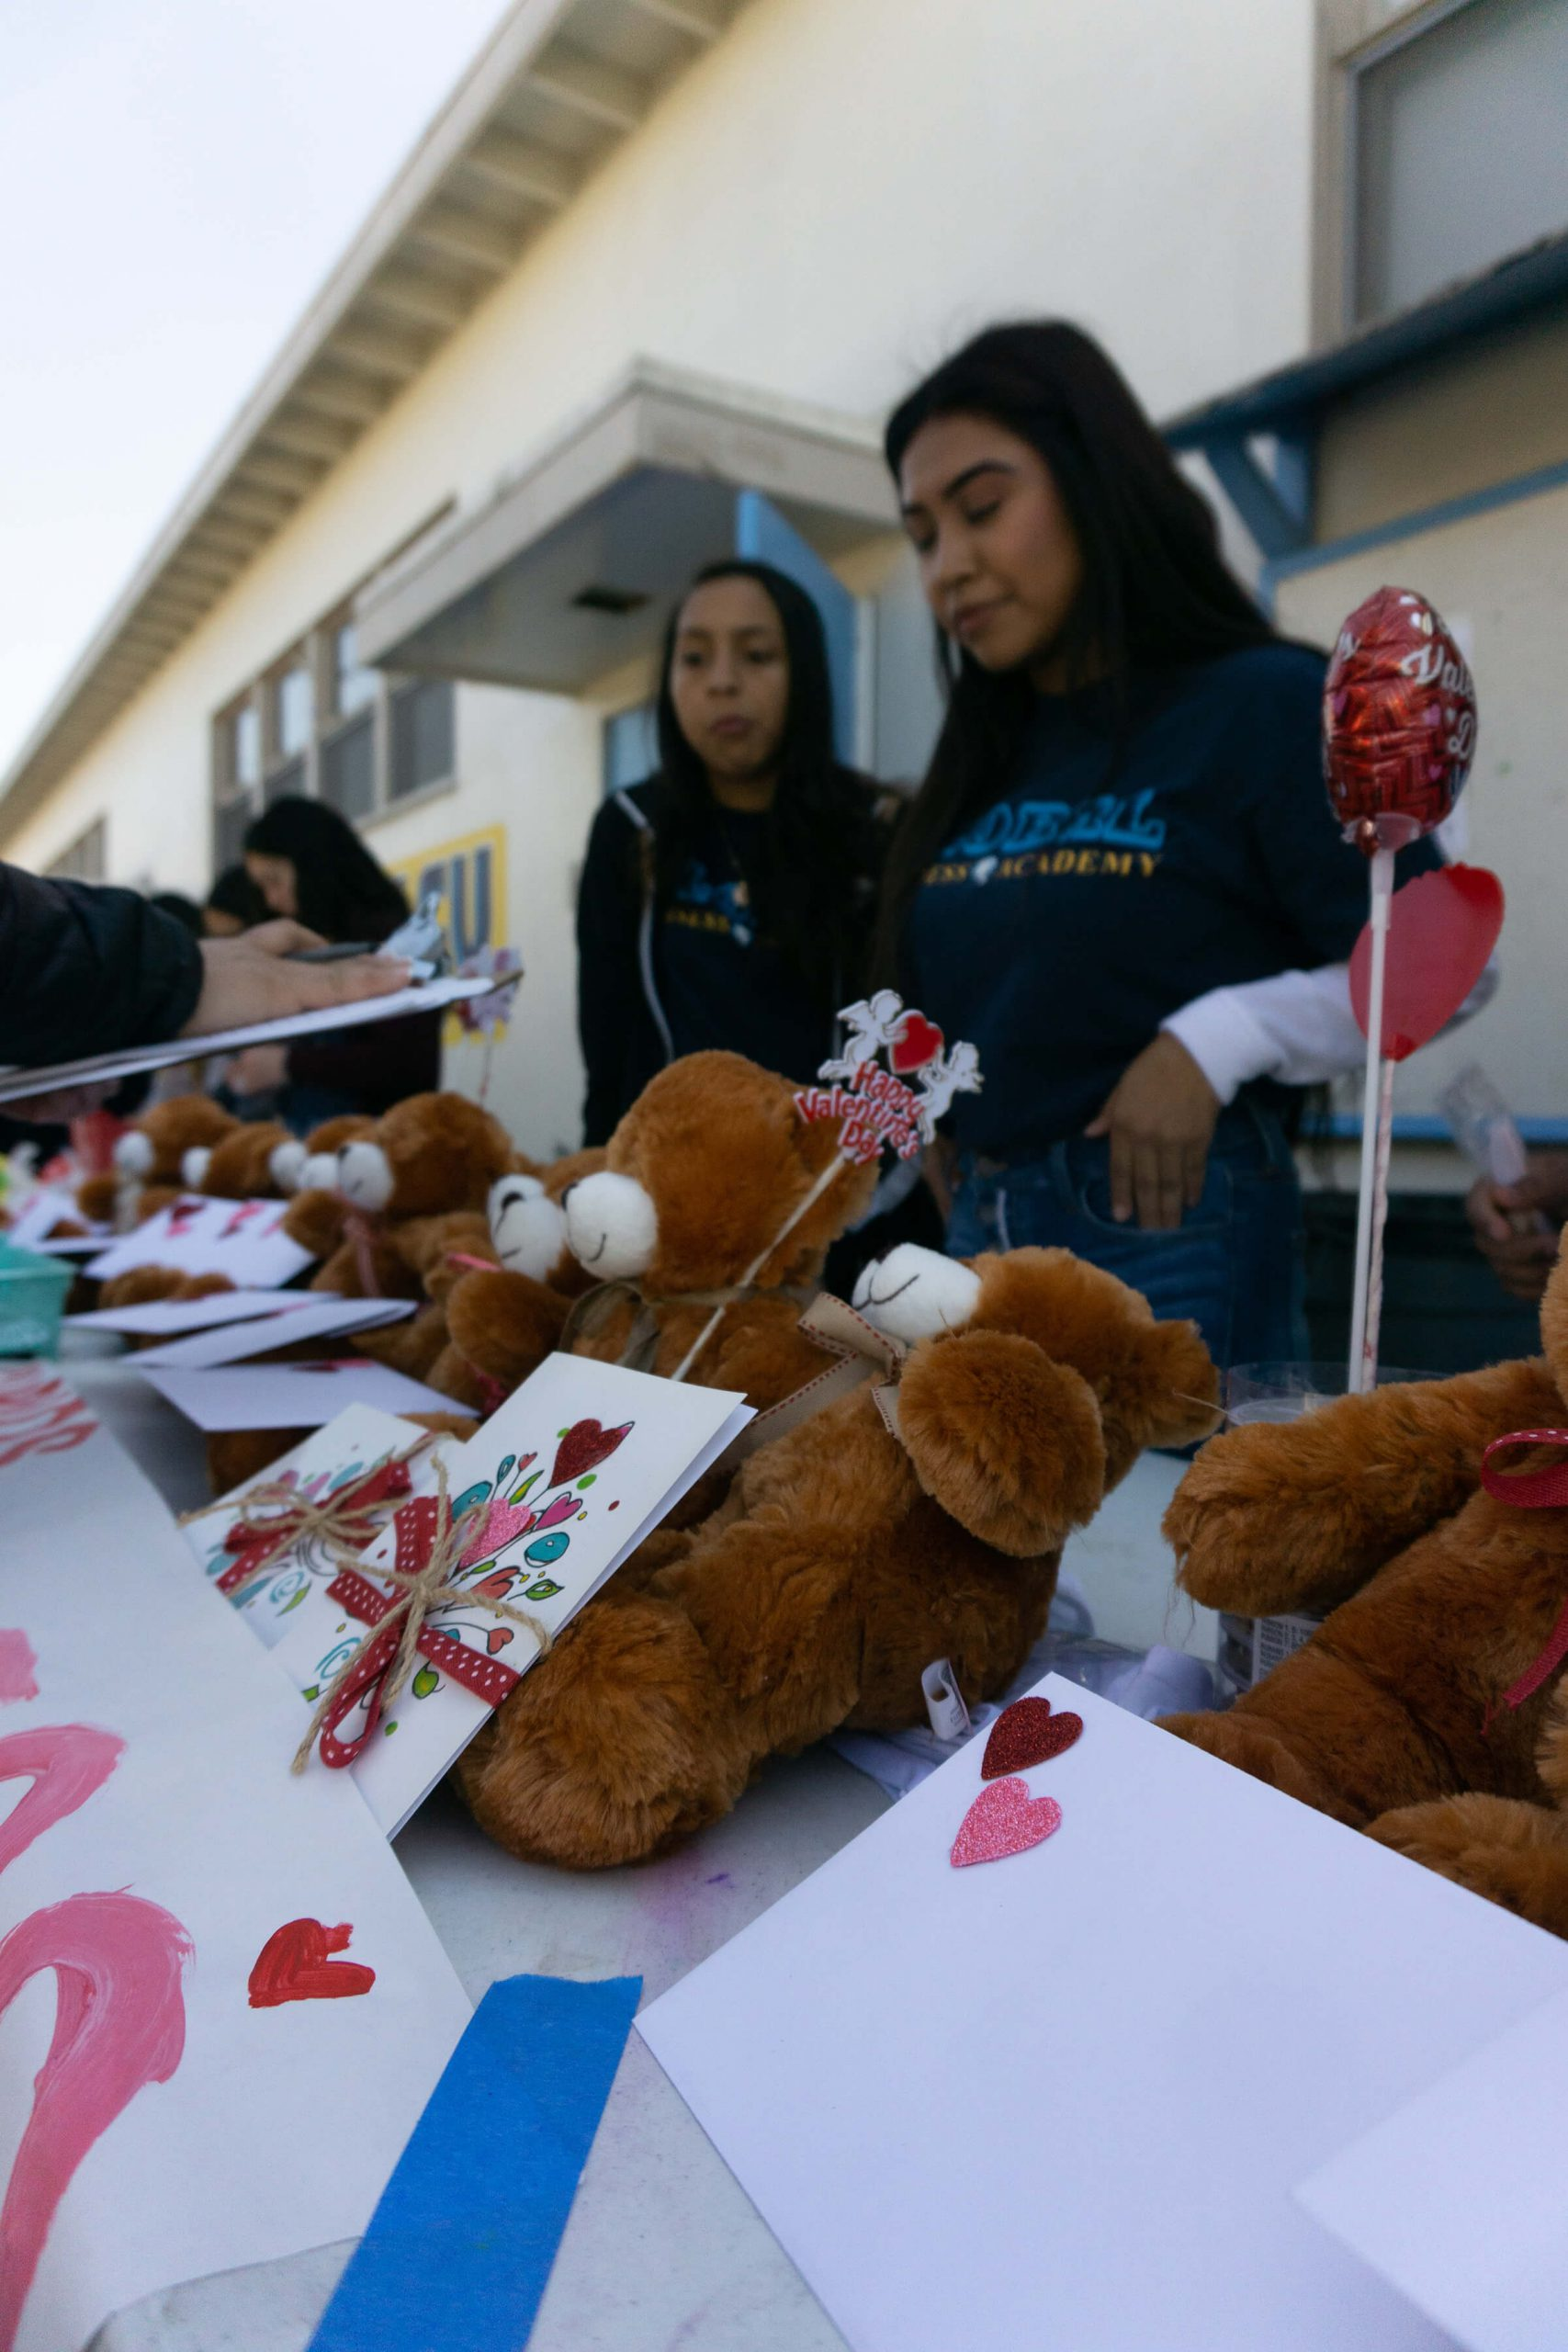 Global business students put on a fundraiser for Valentine's Day with teddy bears and cards.